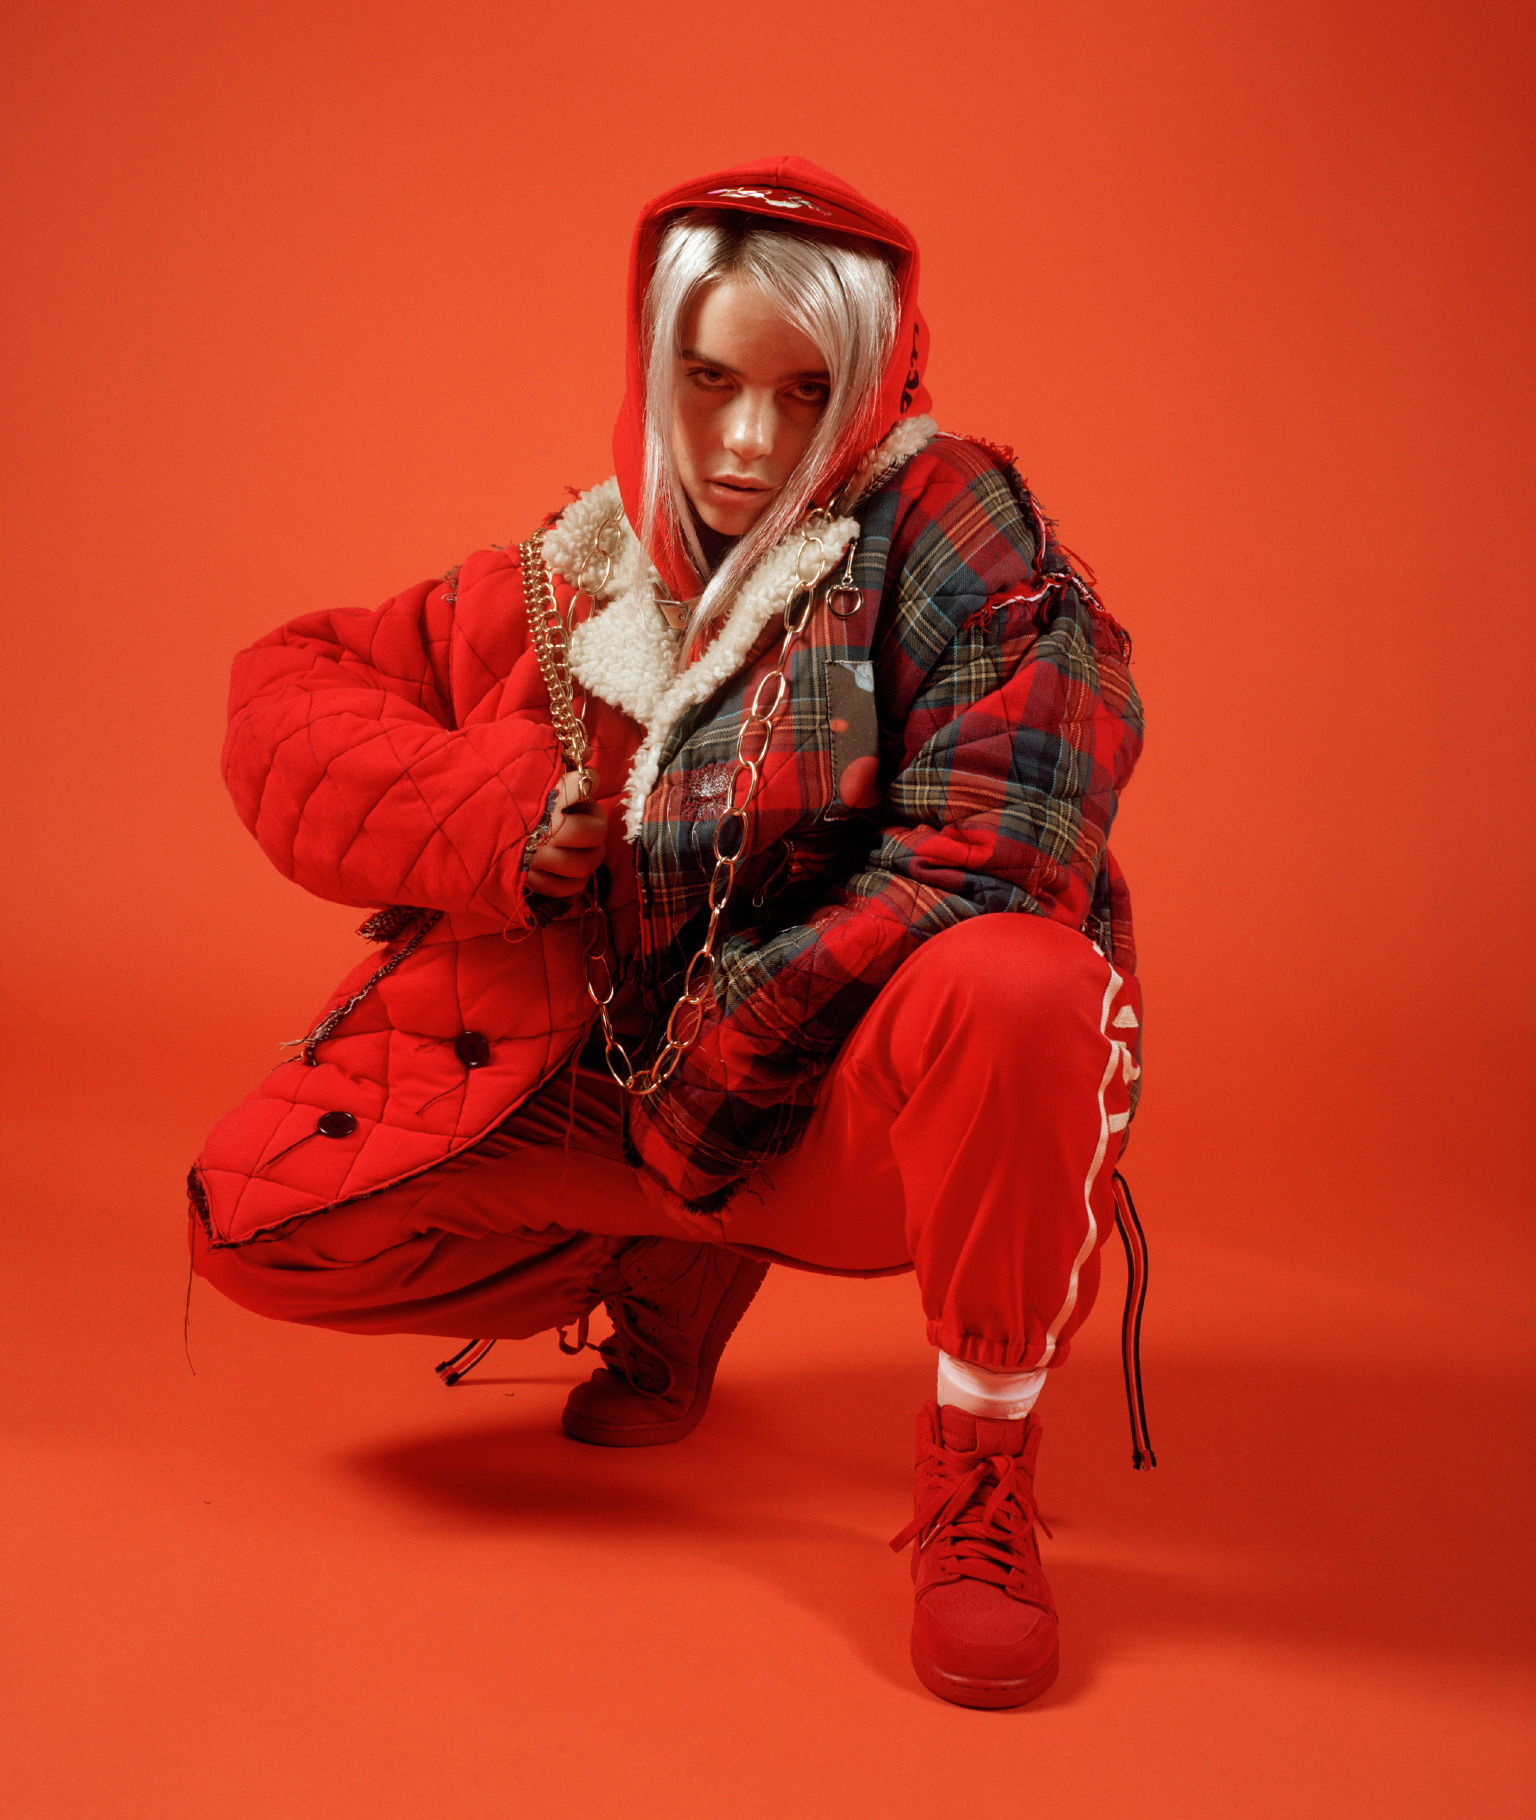 Billie Eilish © Cameron Postforoosh